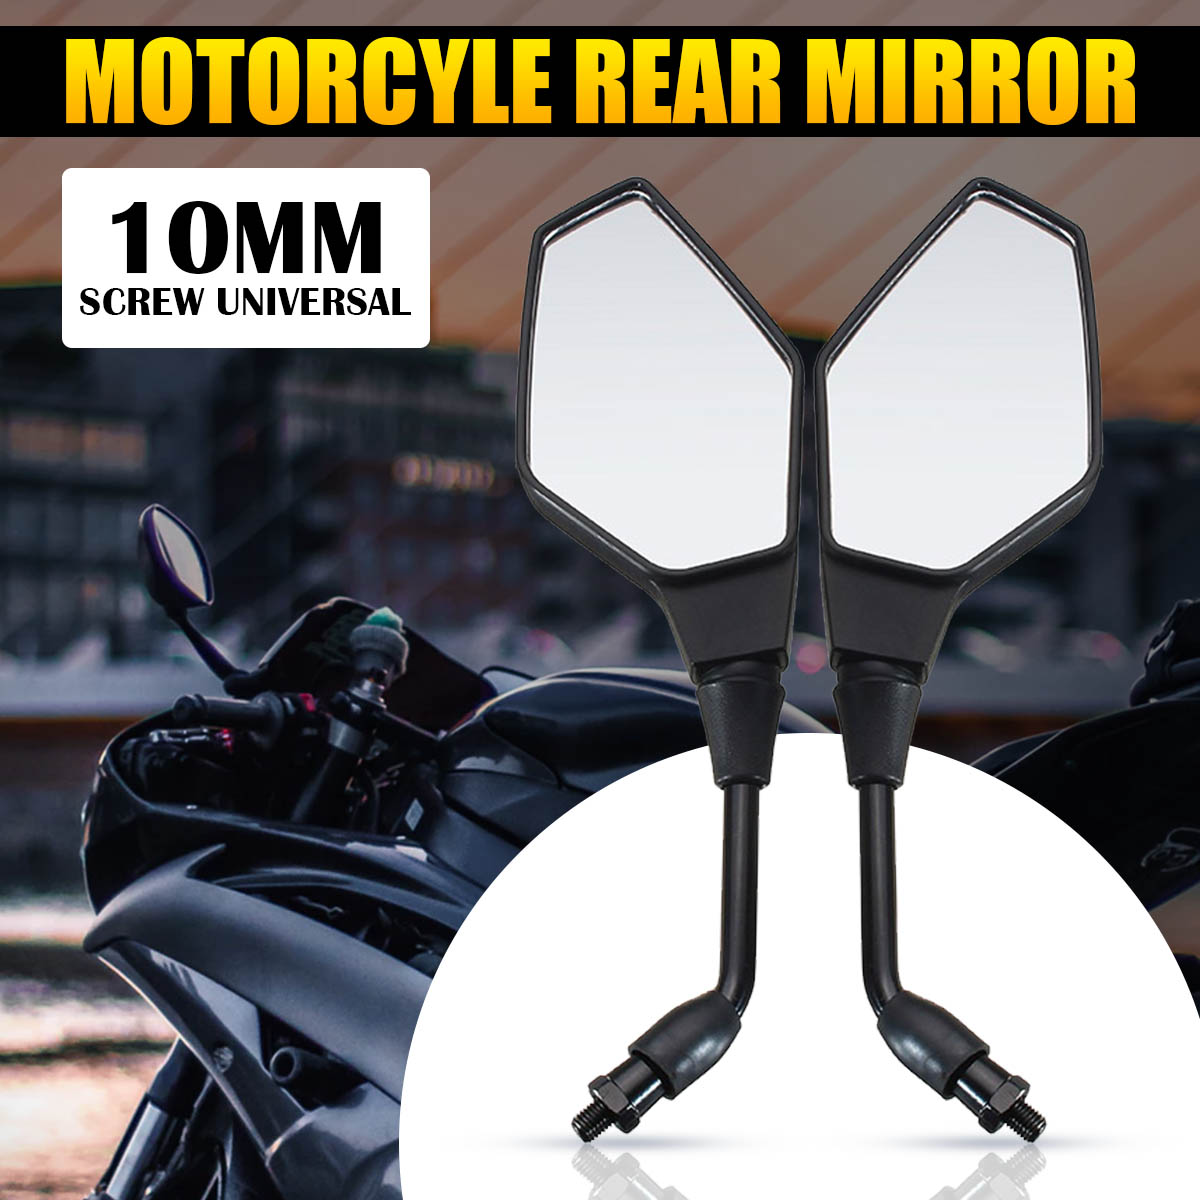 Mofaner 10MM Motorcycle Handlebar Rear View Side Mirror Rearview Mirrors Universal For Honda/Kawasaki/Yamaha/Suzuki/KTM Black цена